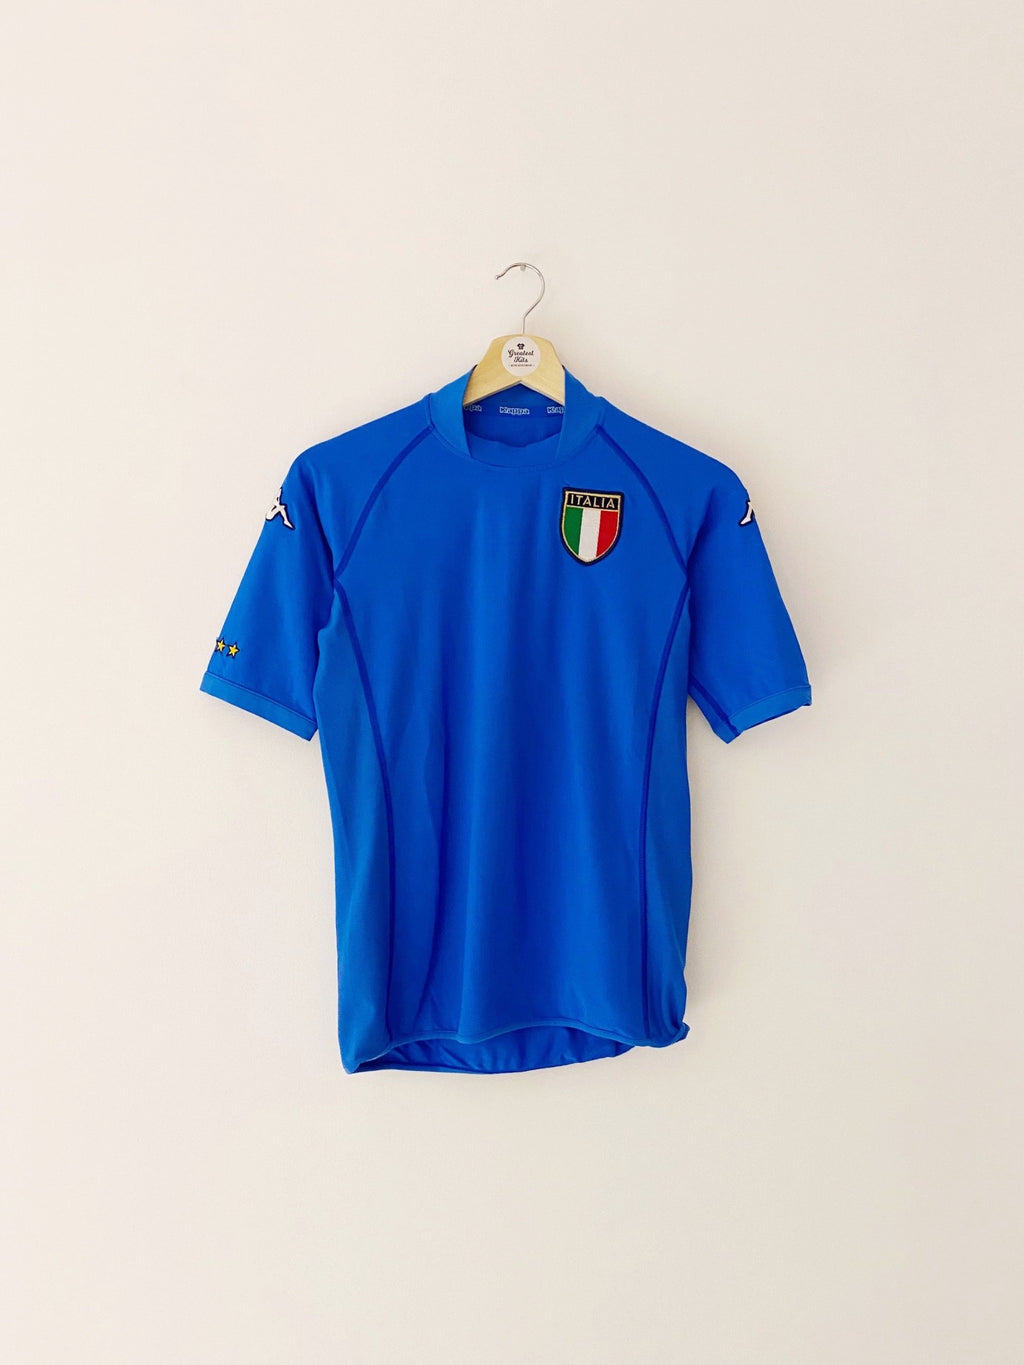 2002 Italy Home Shirt (S) 9/10